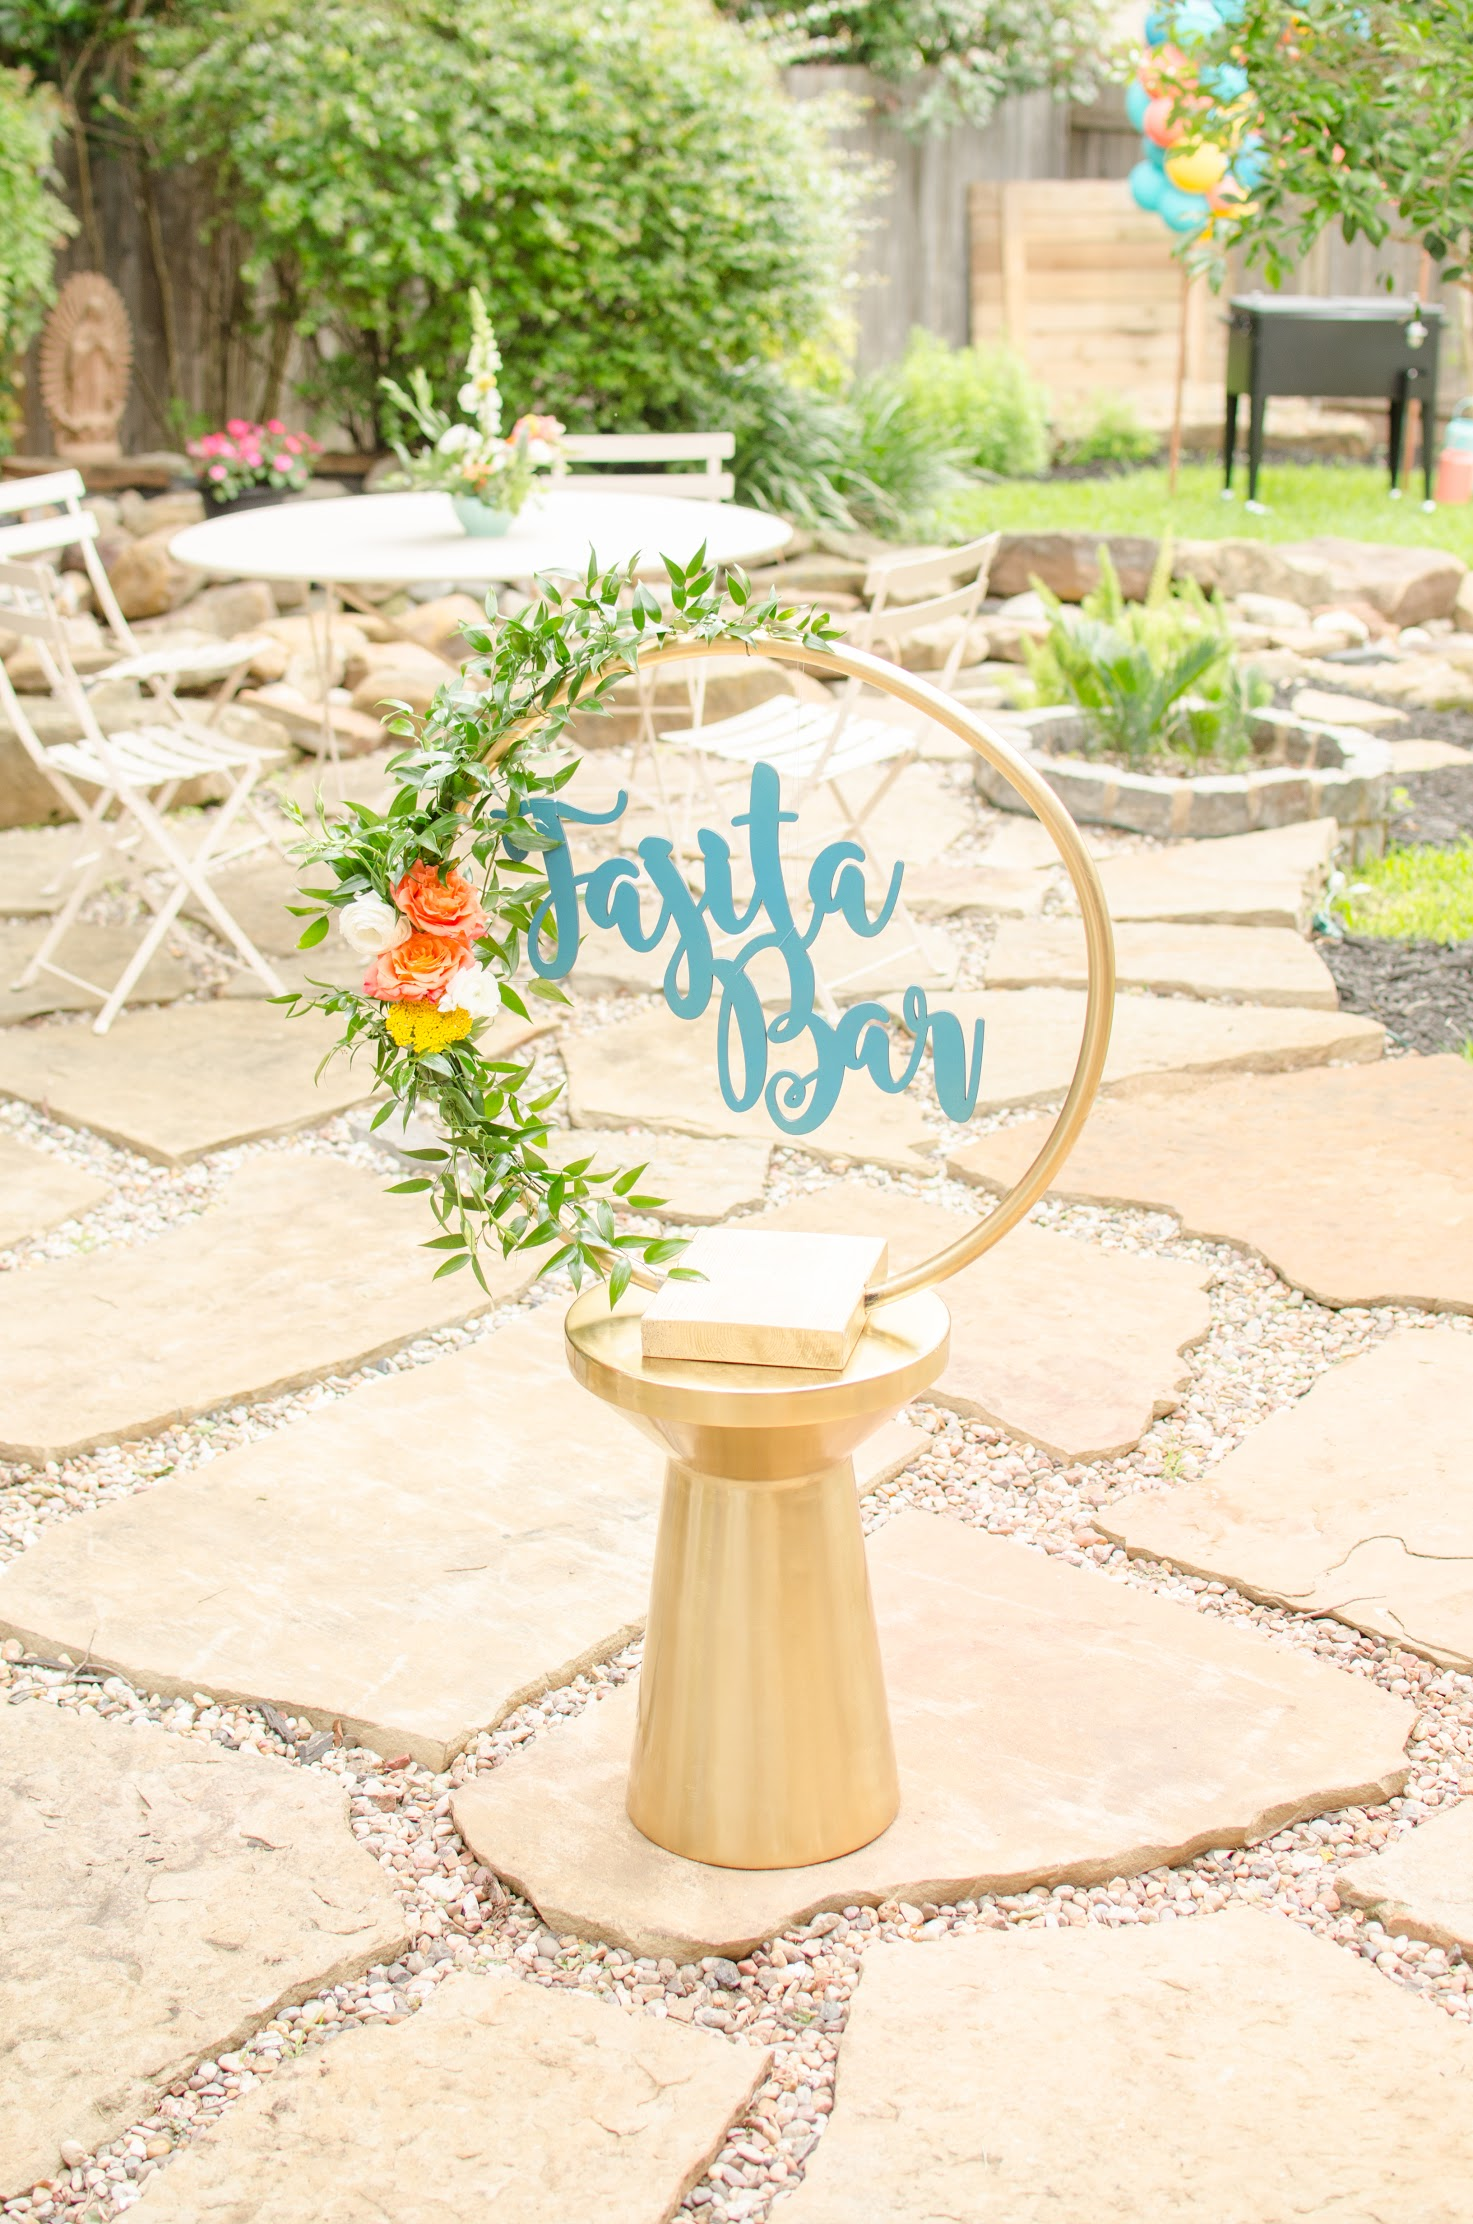 DIY Fajita Bar Party Sign - spray paint a hula hoop gold or use a floral gold hoop, add florals and a decorative lettered sign. See more from this Grad Party on Mint Event Design www.minteventdesign.com #graduationparty #graduationpartyideas #graduation #gradparty #gradpartyideas #partydecor #floralgarland #fiestaparty